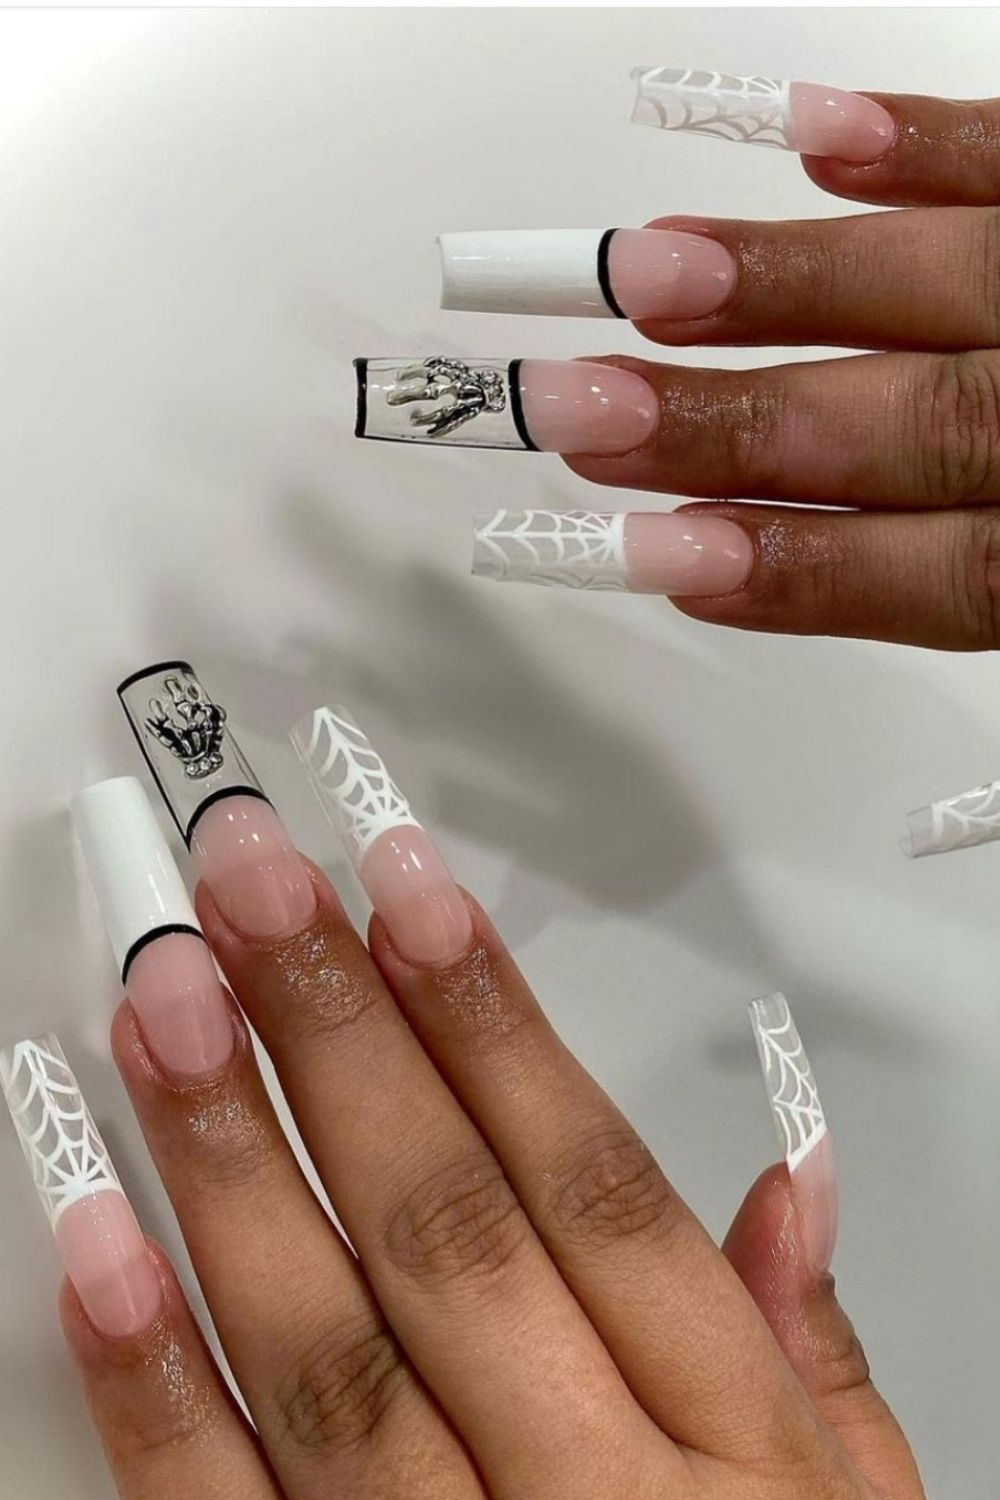 Halloween nail aesthetic | Trendy Halloween manicure to try 2021